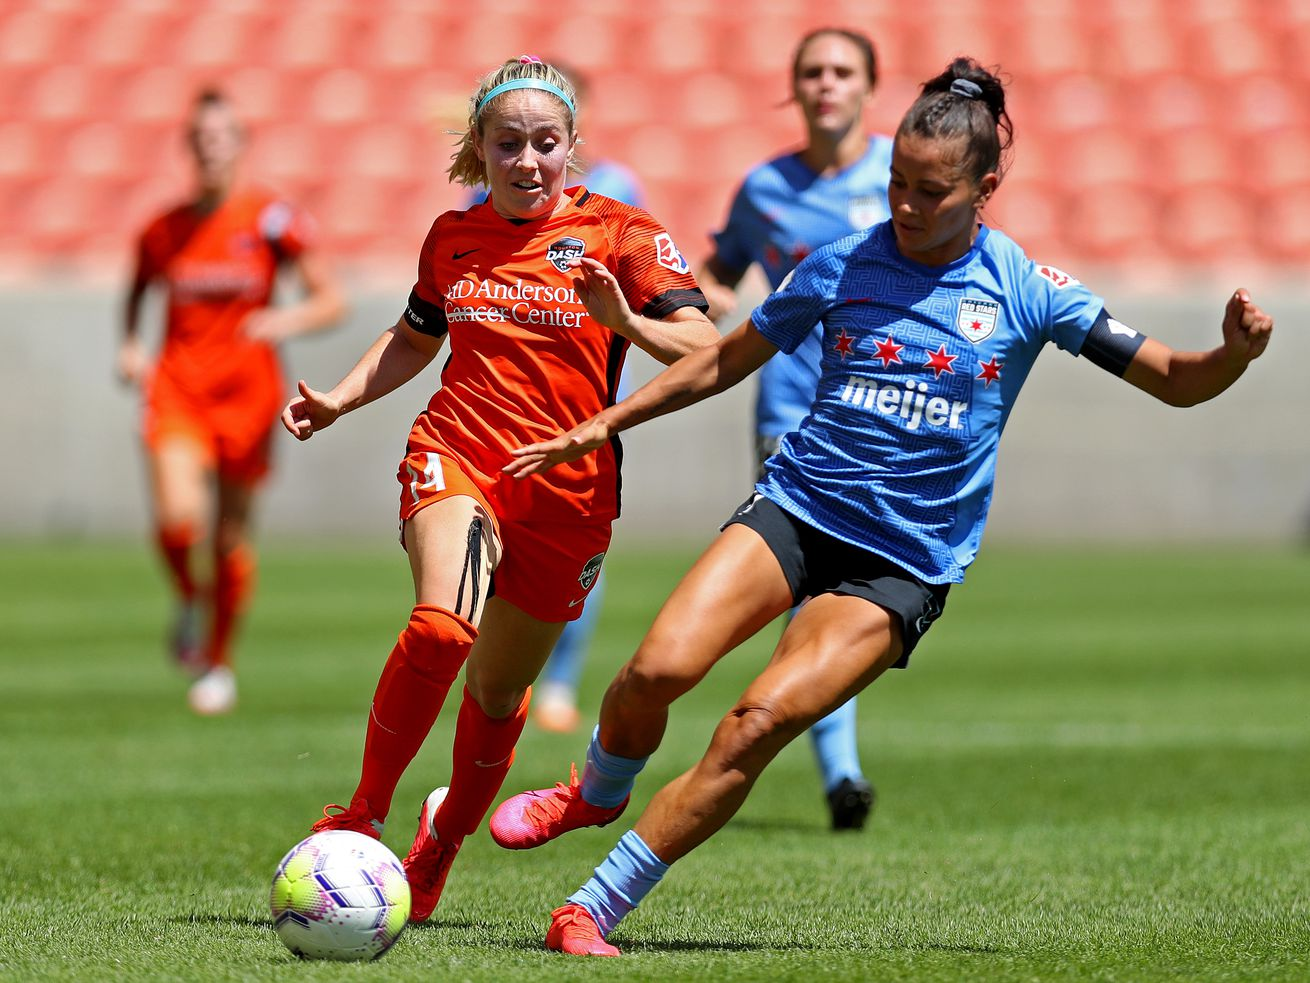 2020 NWSL Challenge Cup - Championship - Houston Dash v Chicago Red Stars